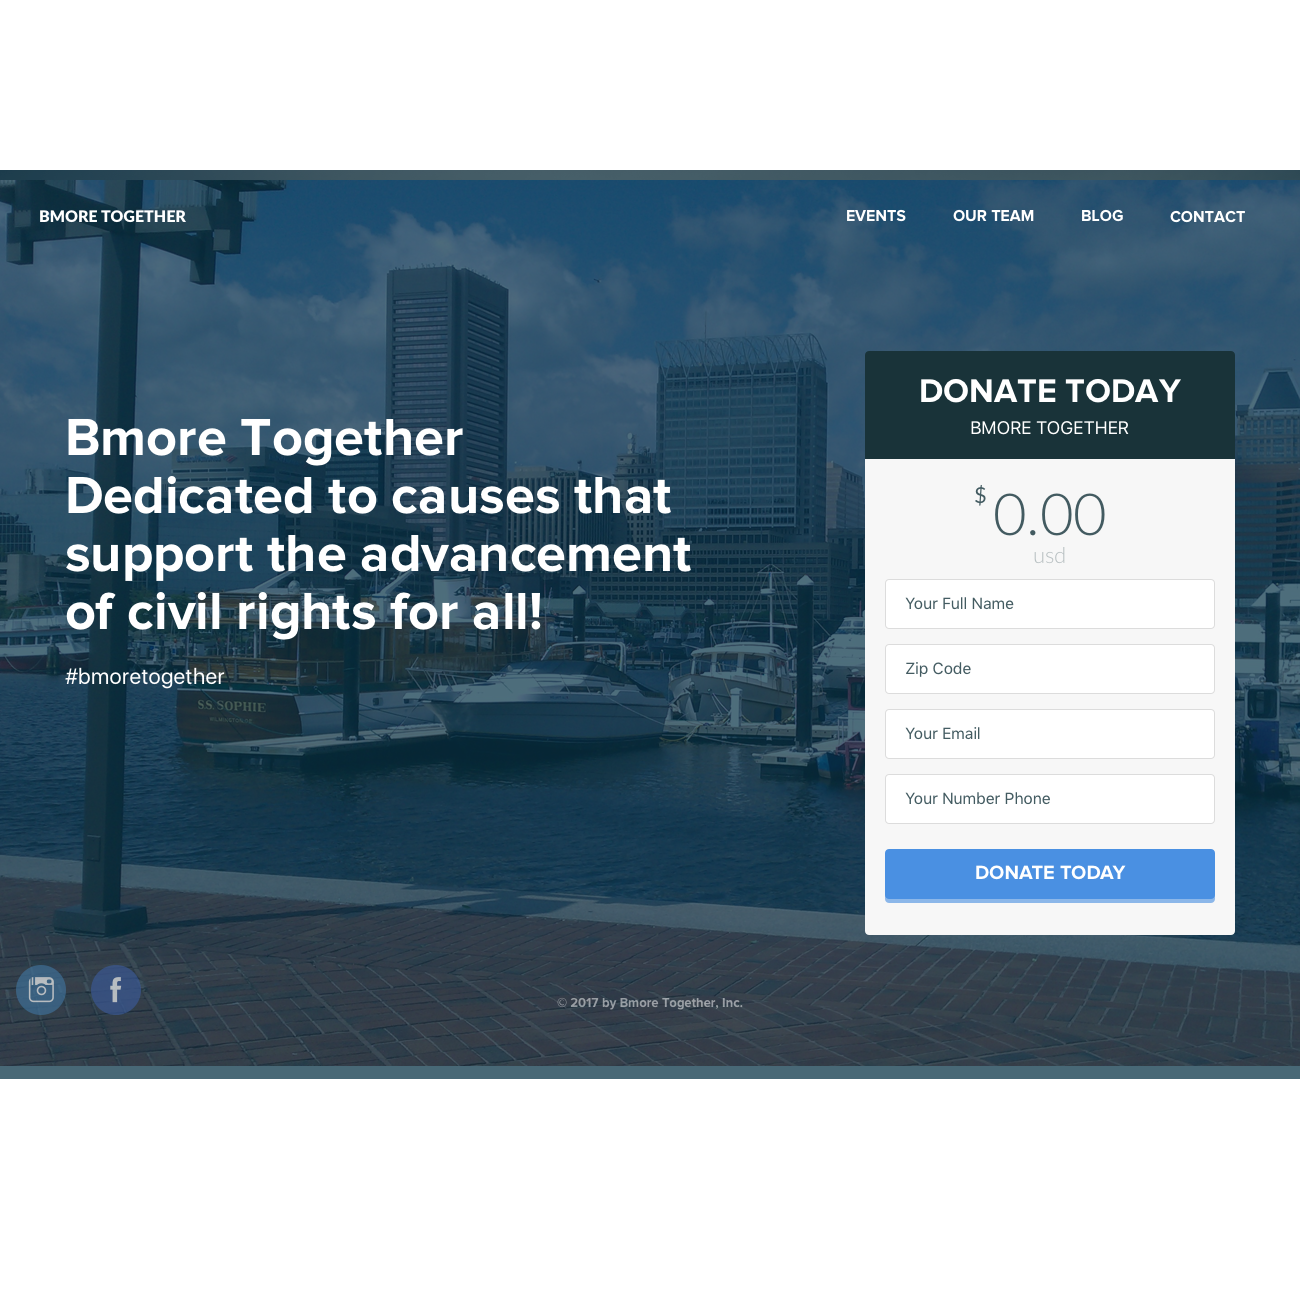 Bmore Together concept for a marketing website